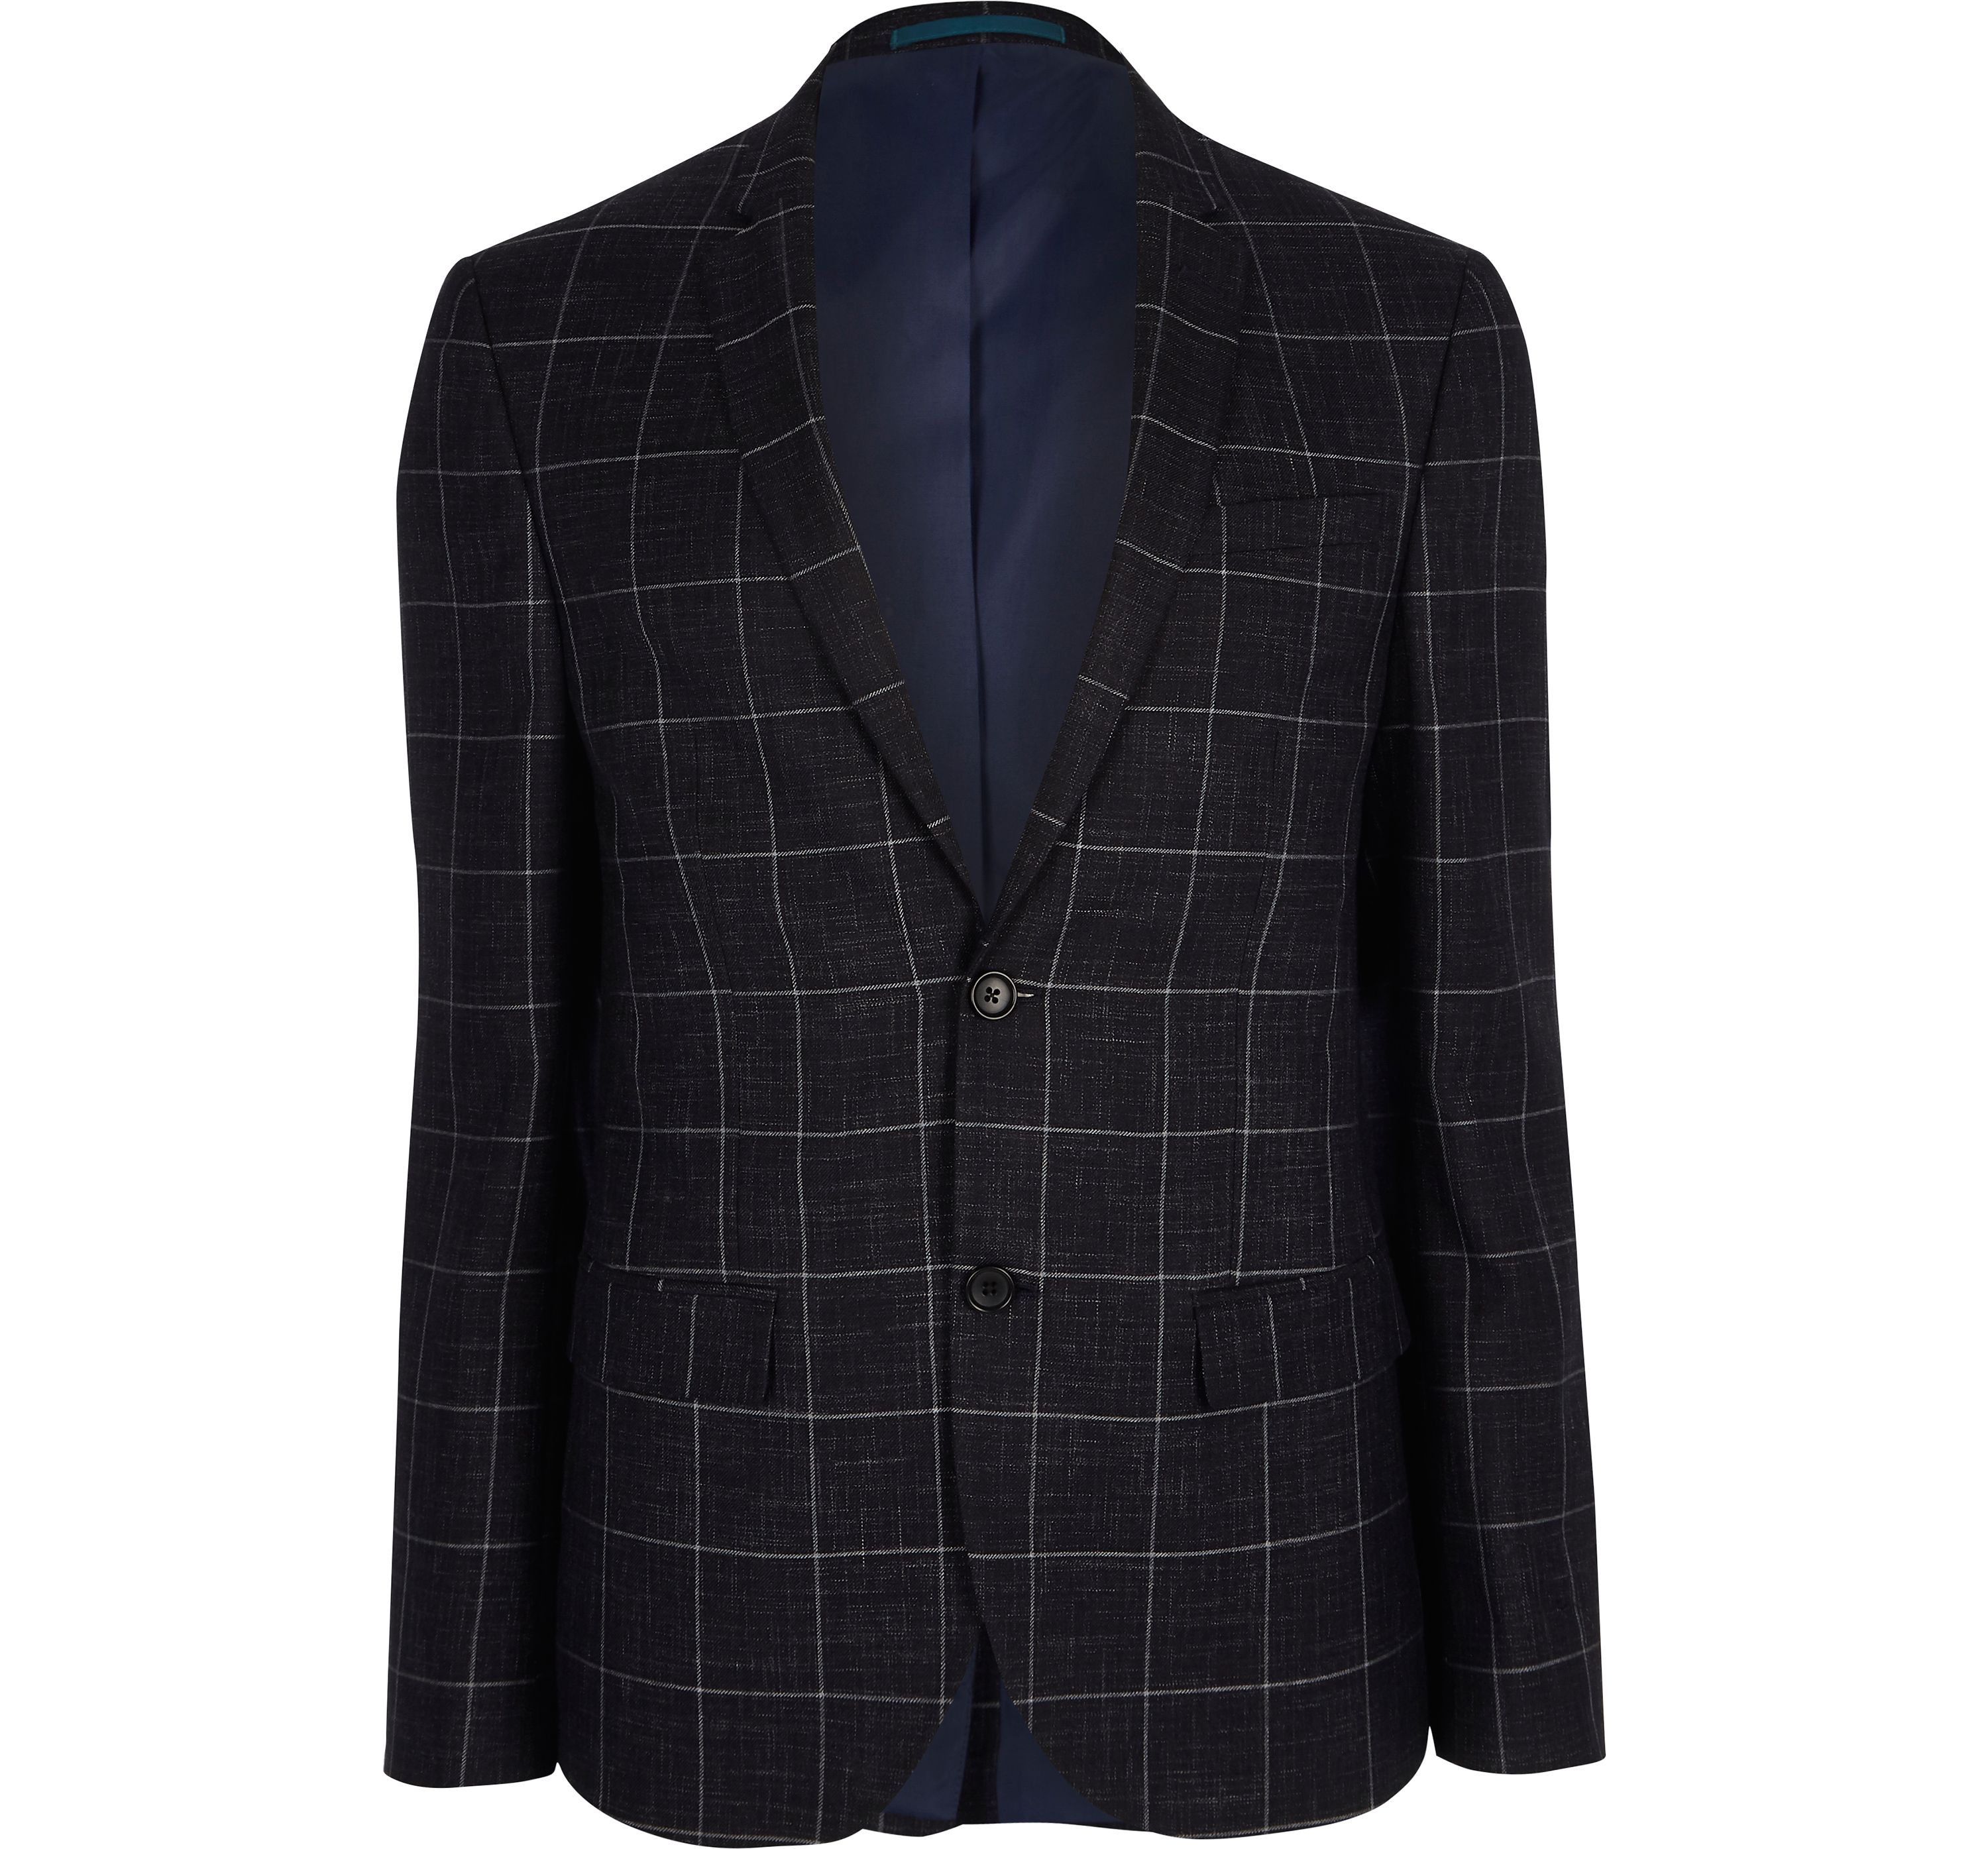 River Island Mens Navy window check skinny fit suit jacket